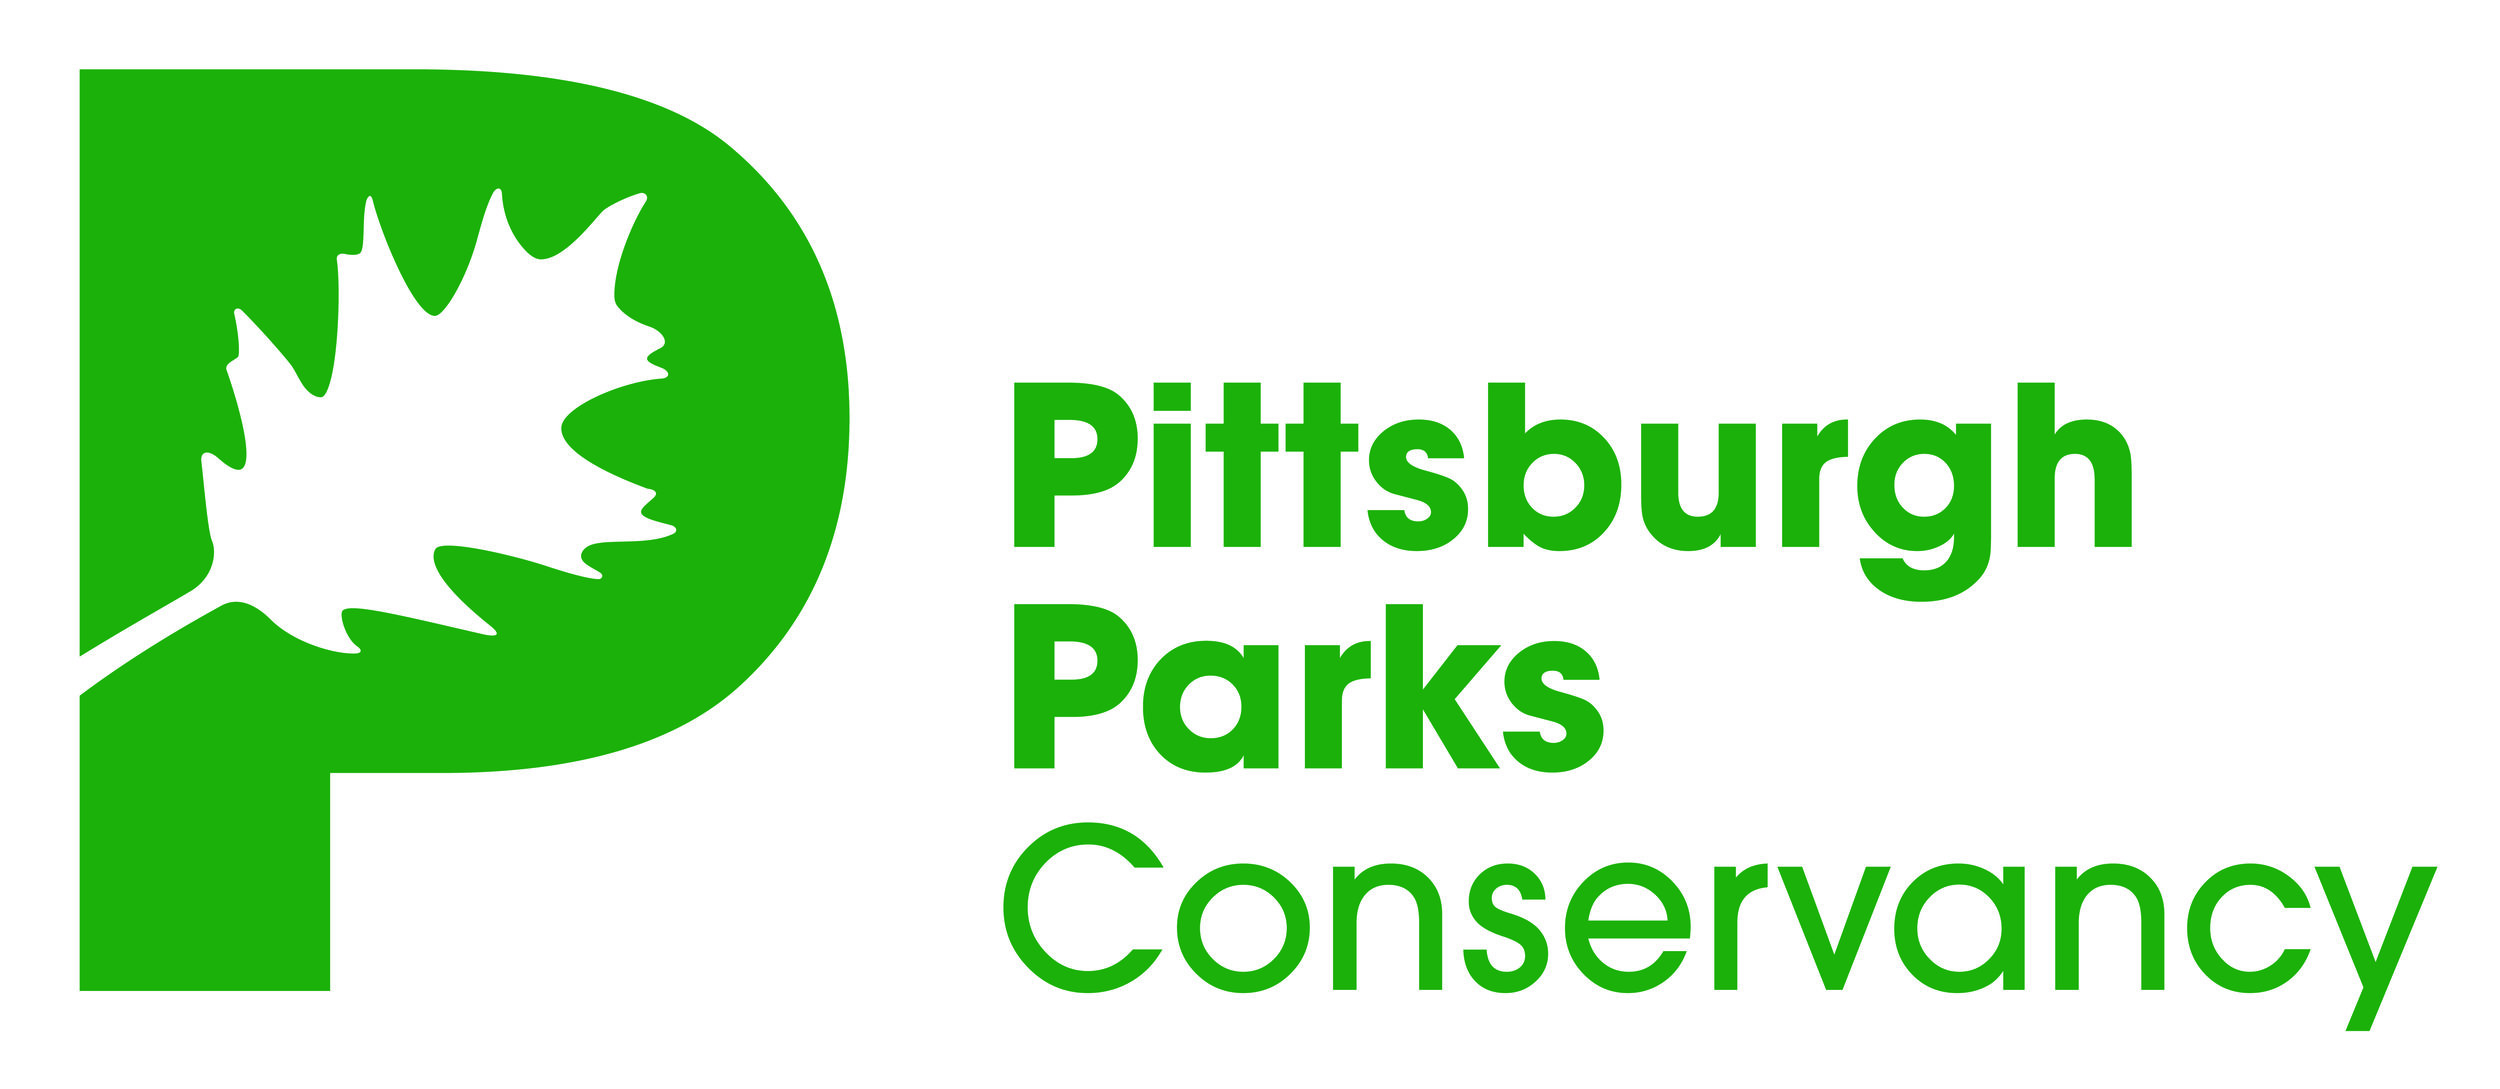 Pittsburgh Parks Conservancy logo.jpg